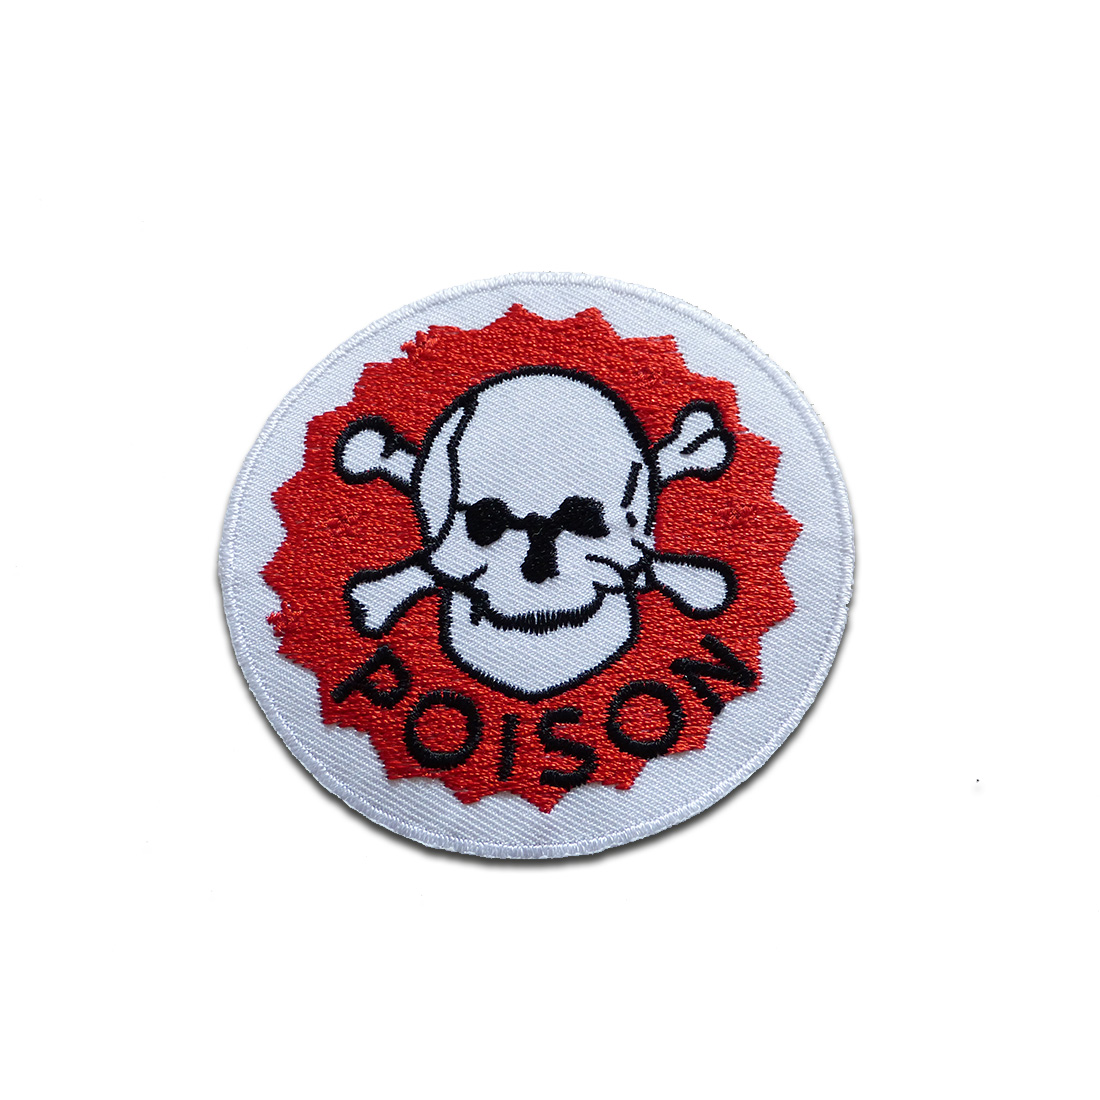 aufn her b gelbild poison gift warnung logo rot 7 cm by catch the patch patch. Black Bedroom Furniture Sets. Home Design Ideas